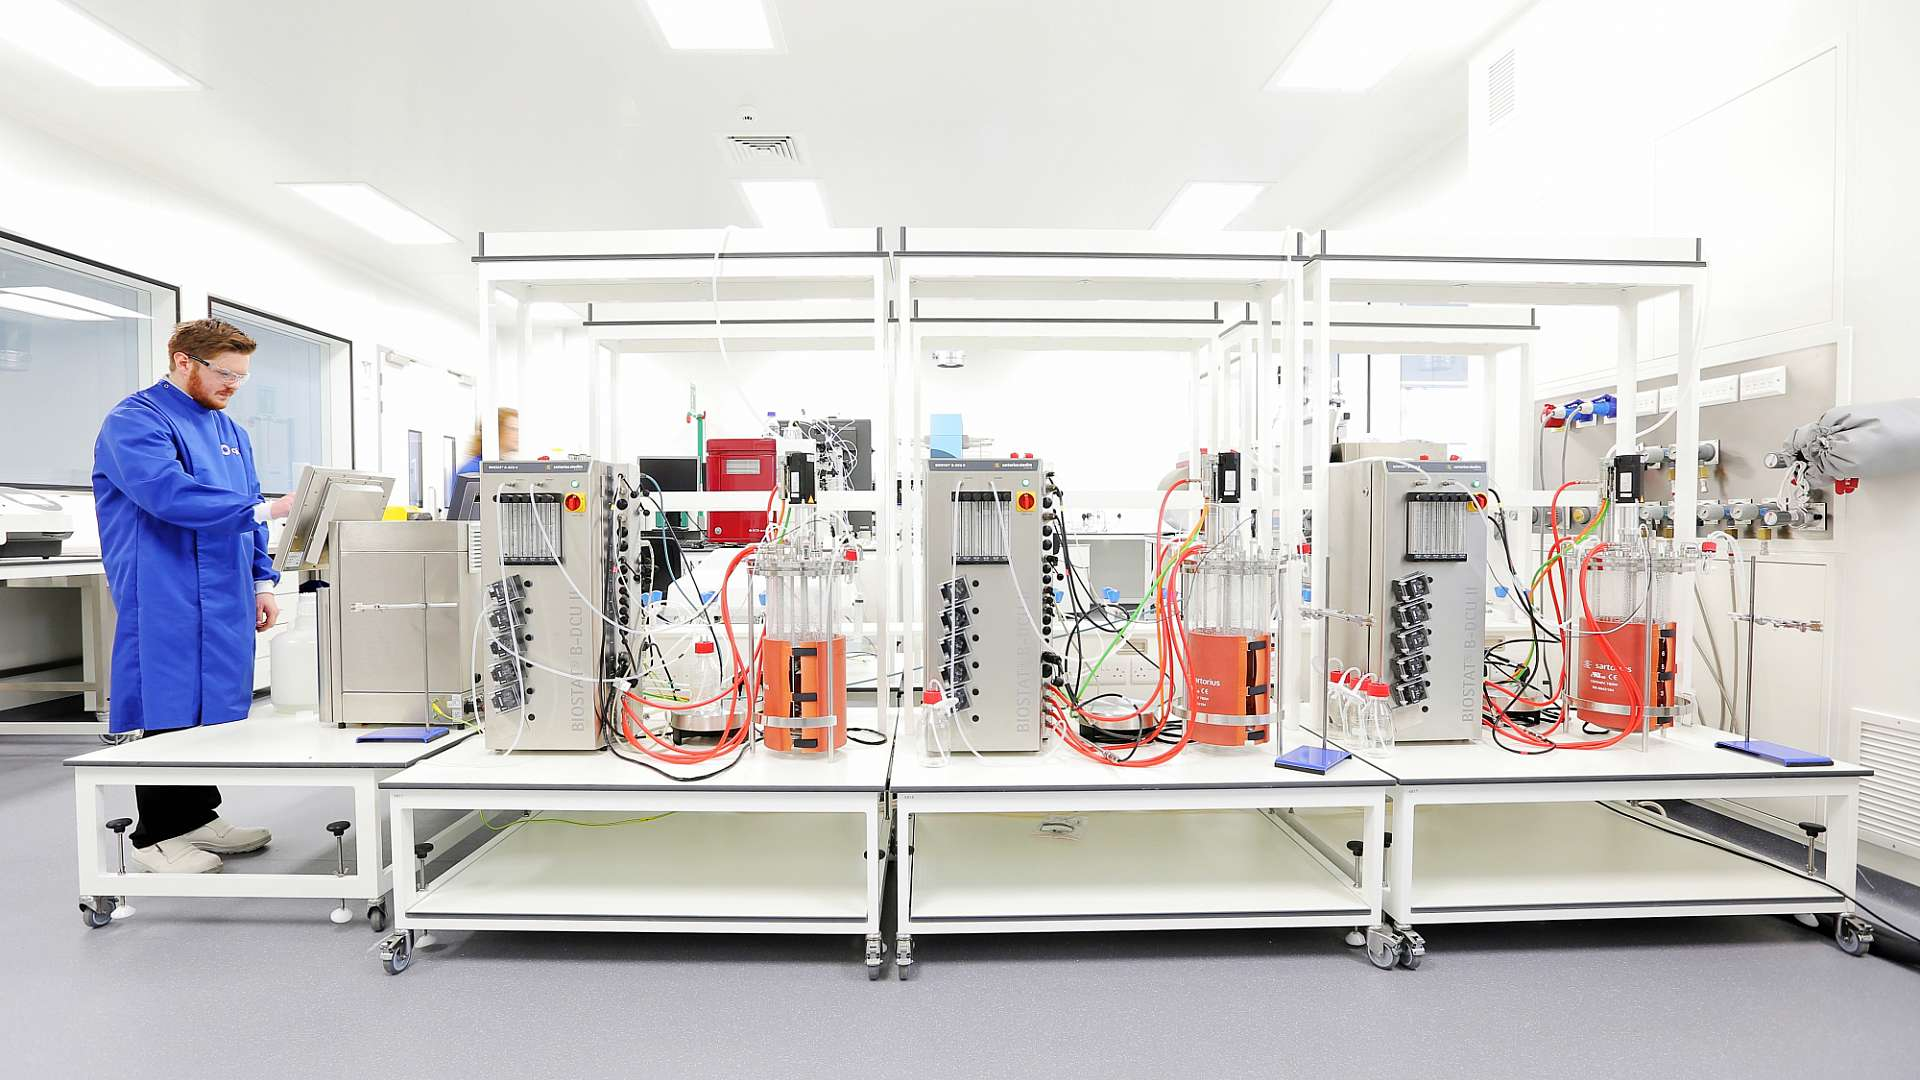 The prototype crystalliser, due to be installed at CPI's Darlington biologics facility, will complement existing cutting-edge equipment, shown above